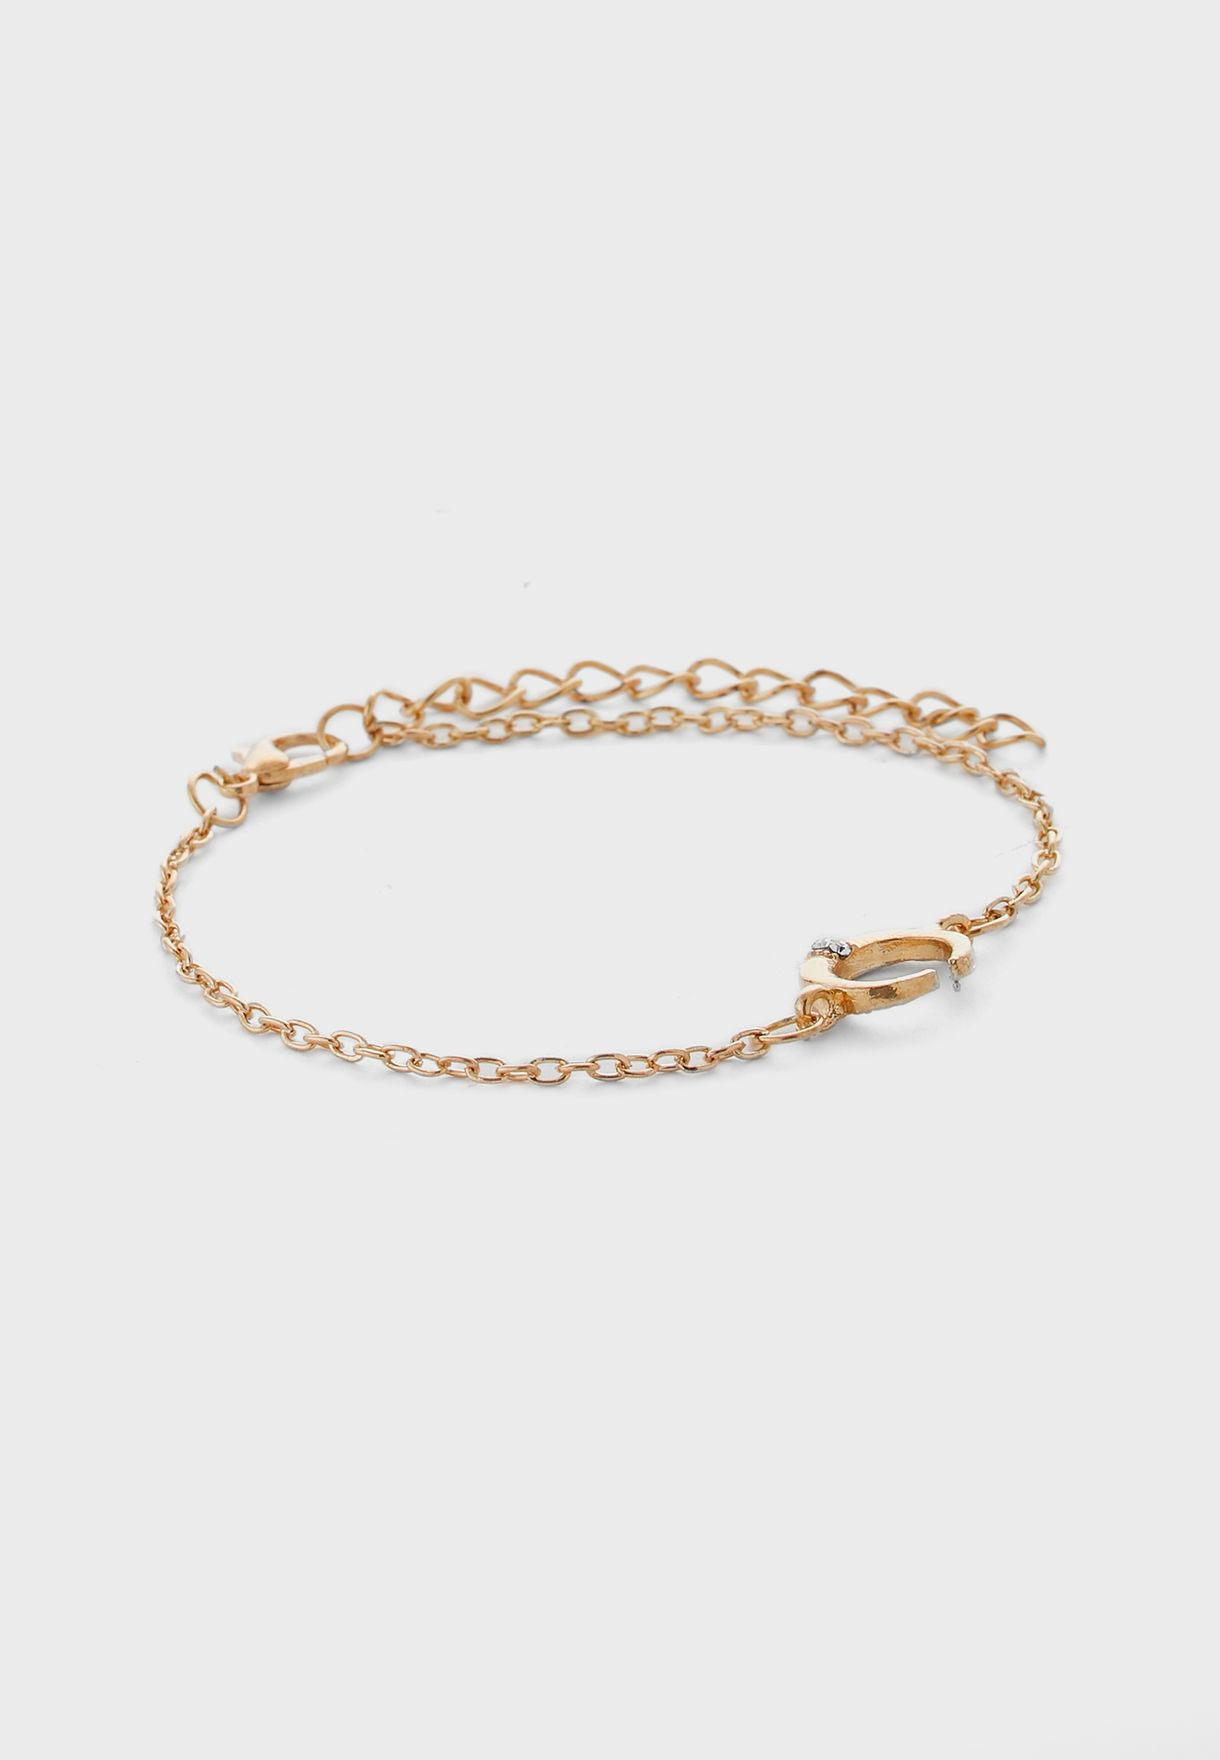 Pack Of 5 Bangle And Chain Charm Bracelets